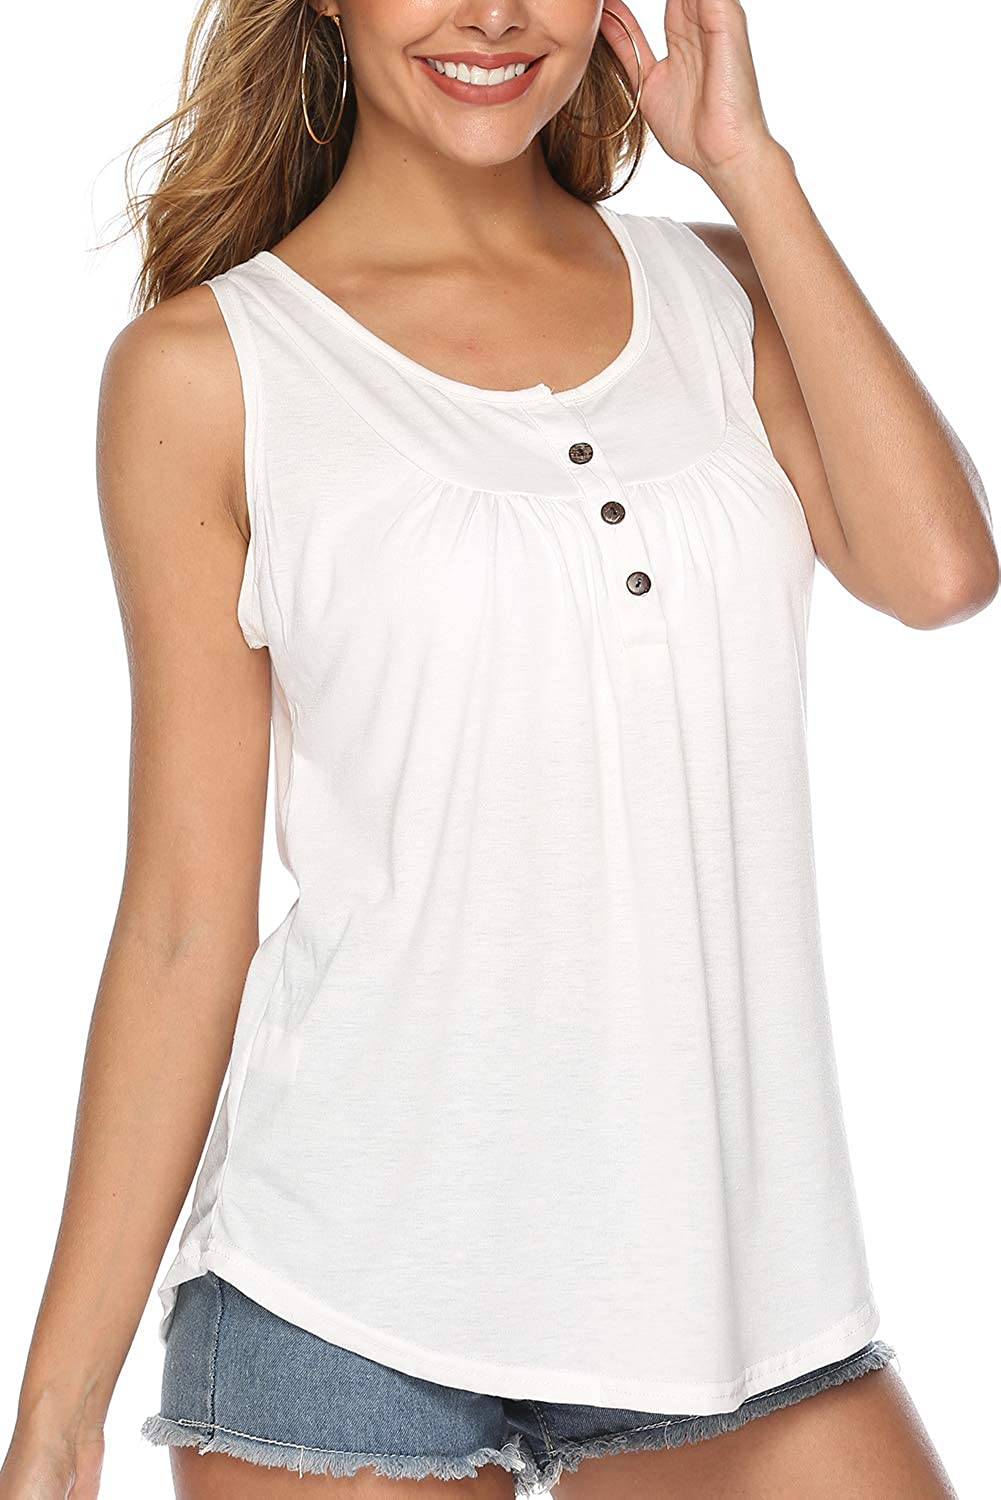 FZ FANTASTIC ZONE Womens Summer Sleeveless Button Up Casual Loose Tank Tops Tunic Shirts Blouses